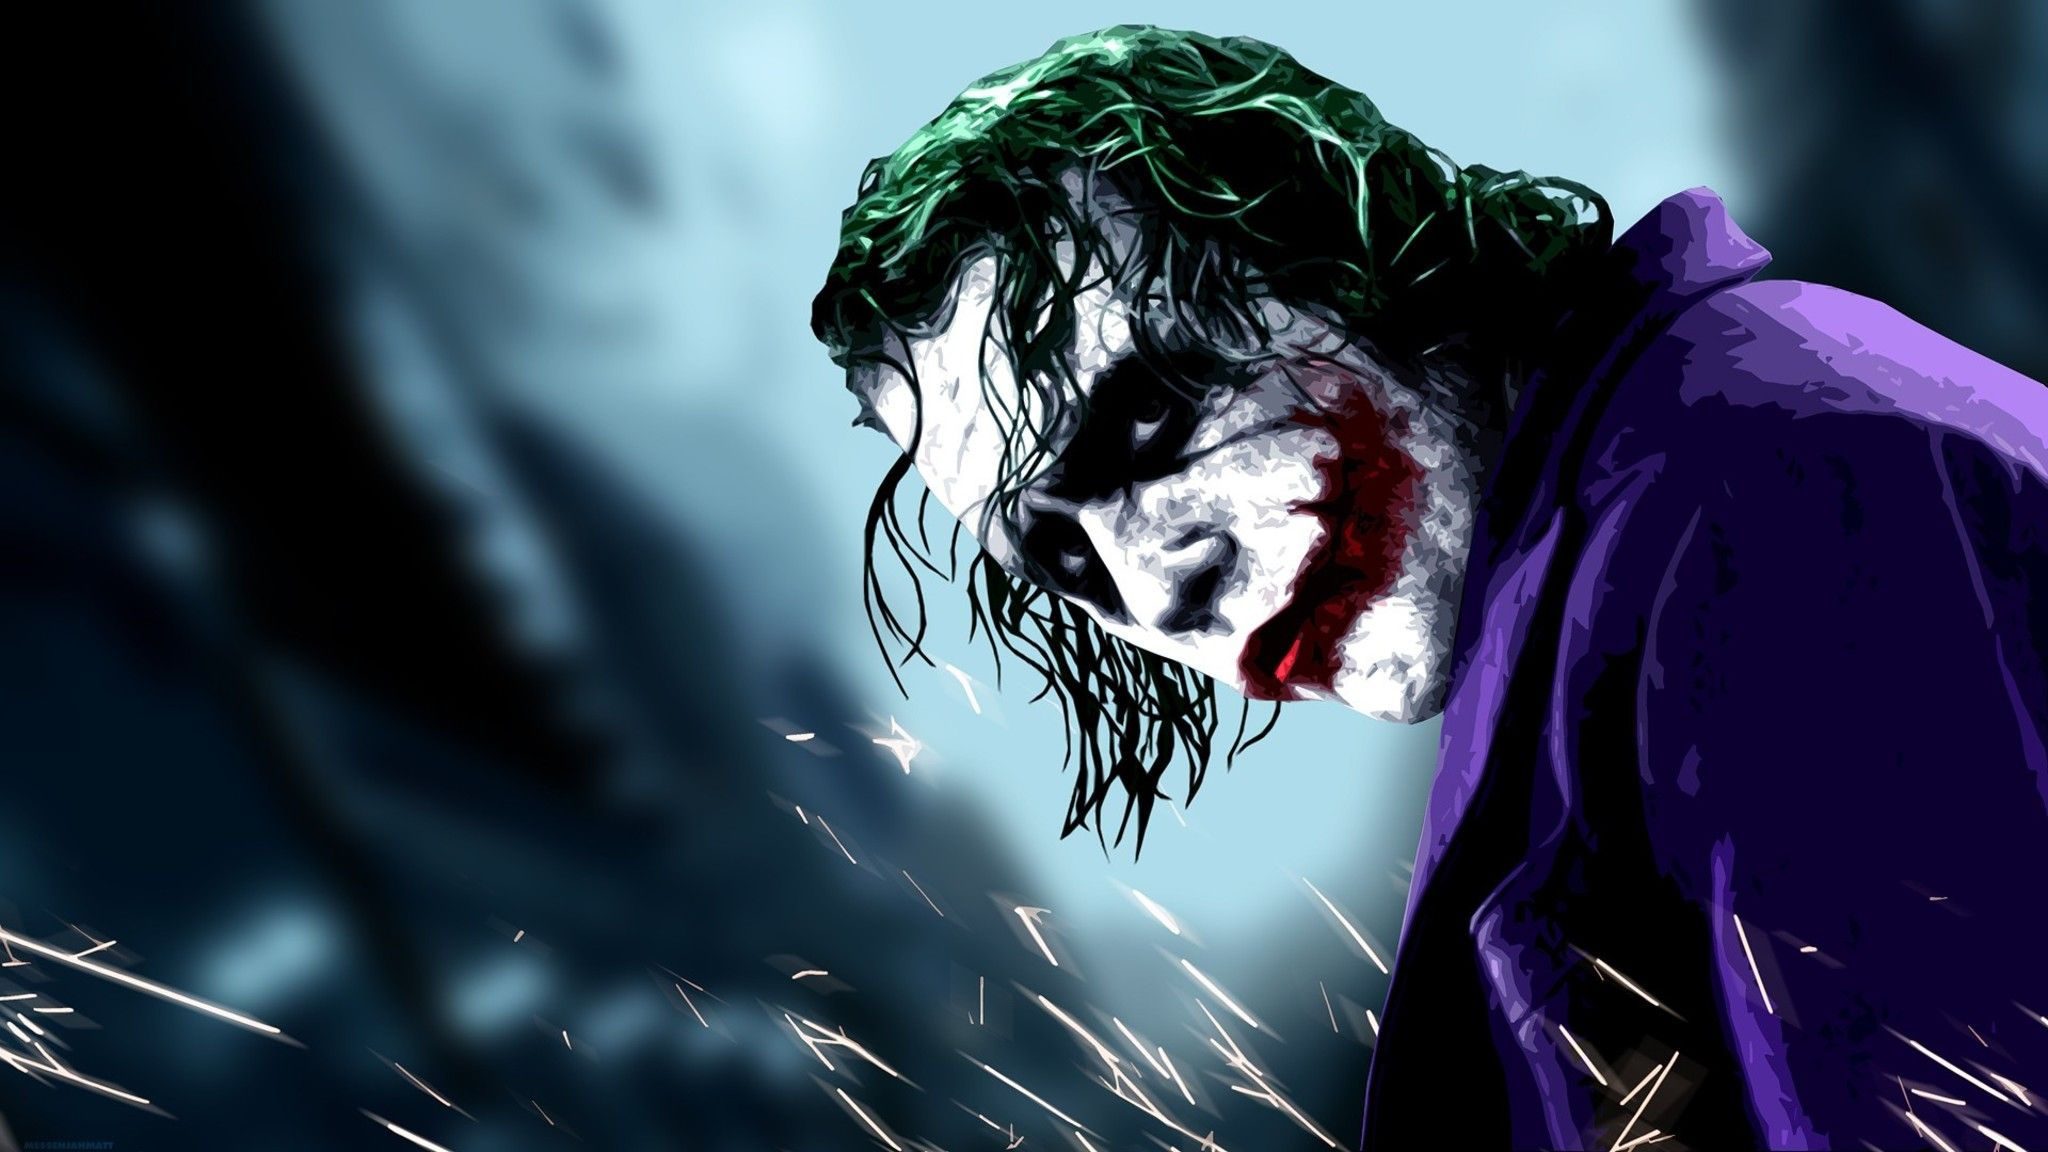 Joker 4k Ultra Hd Wallpapers Top Free Joker 4k Ultra Hd